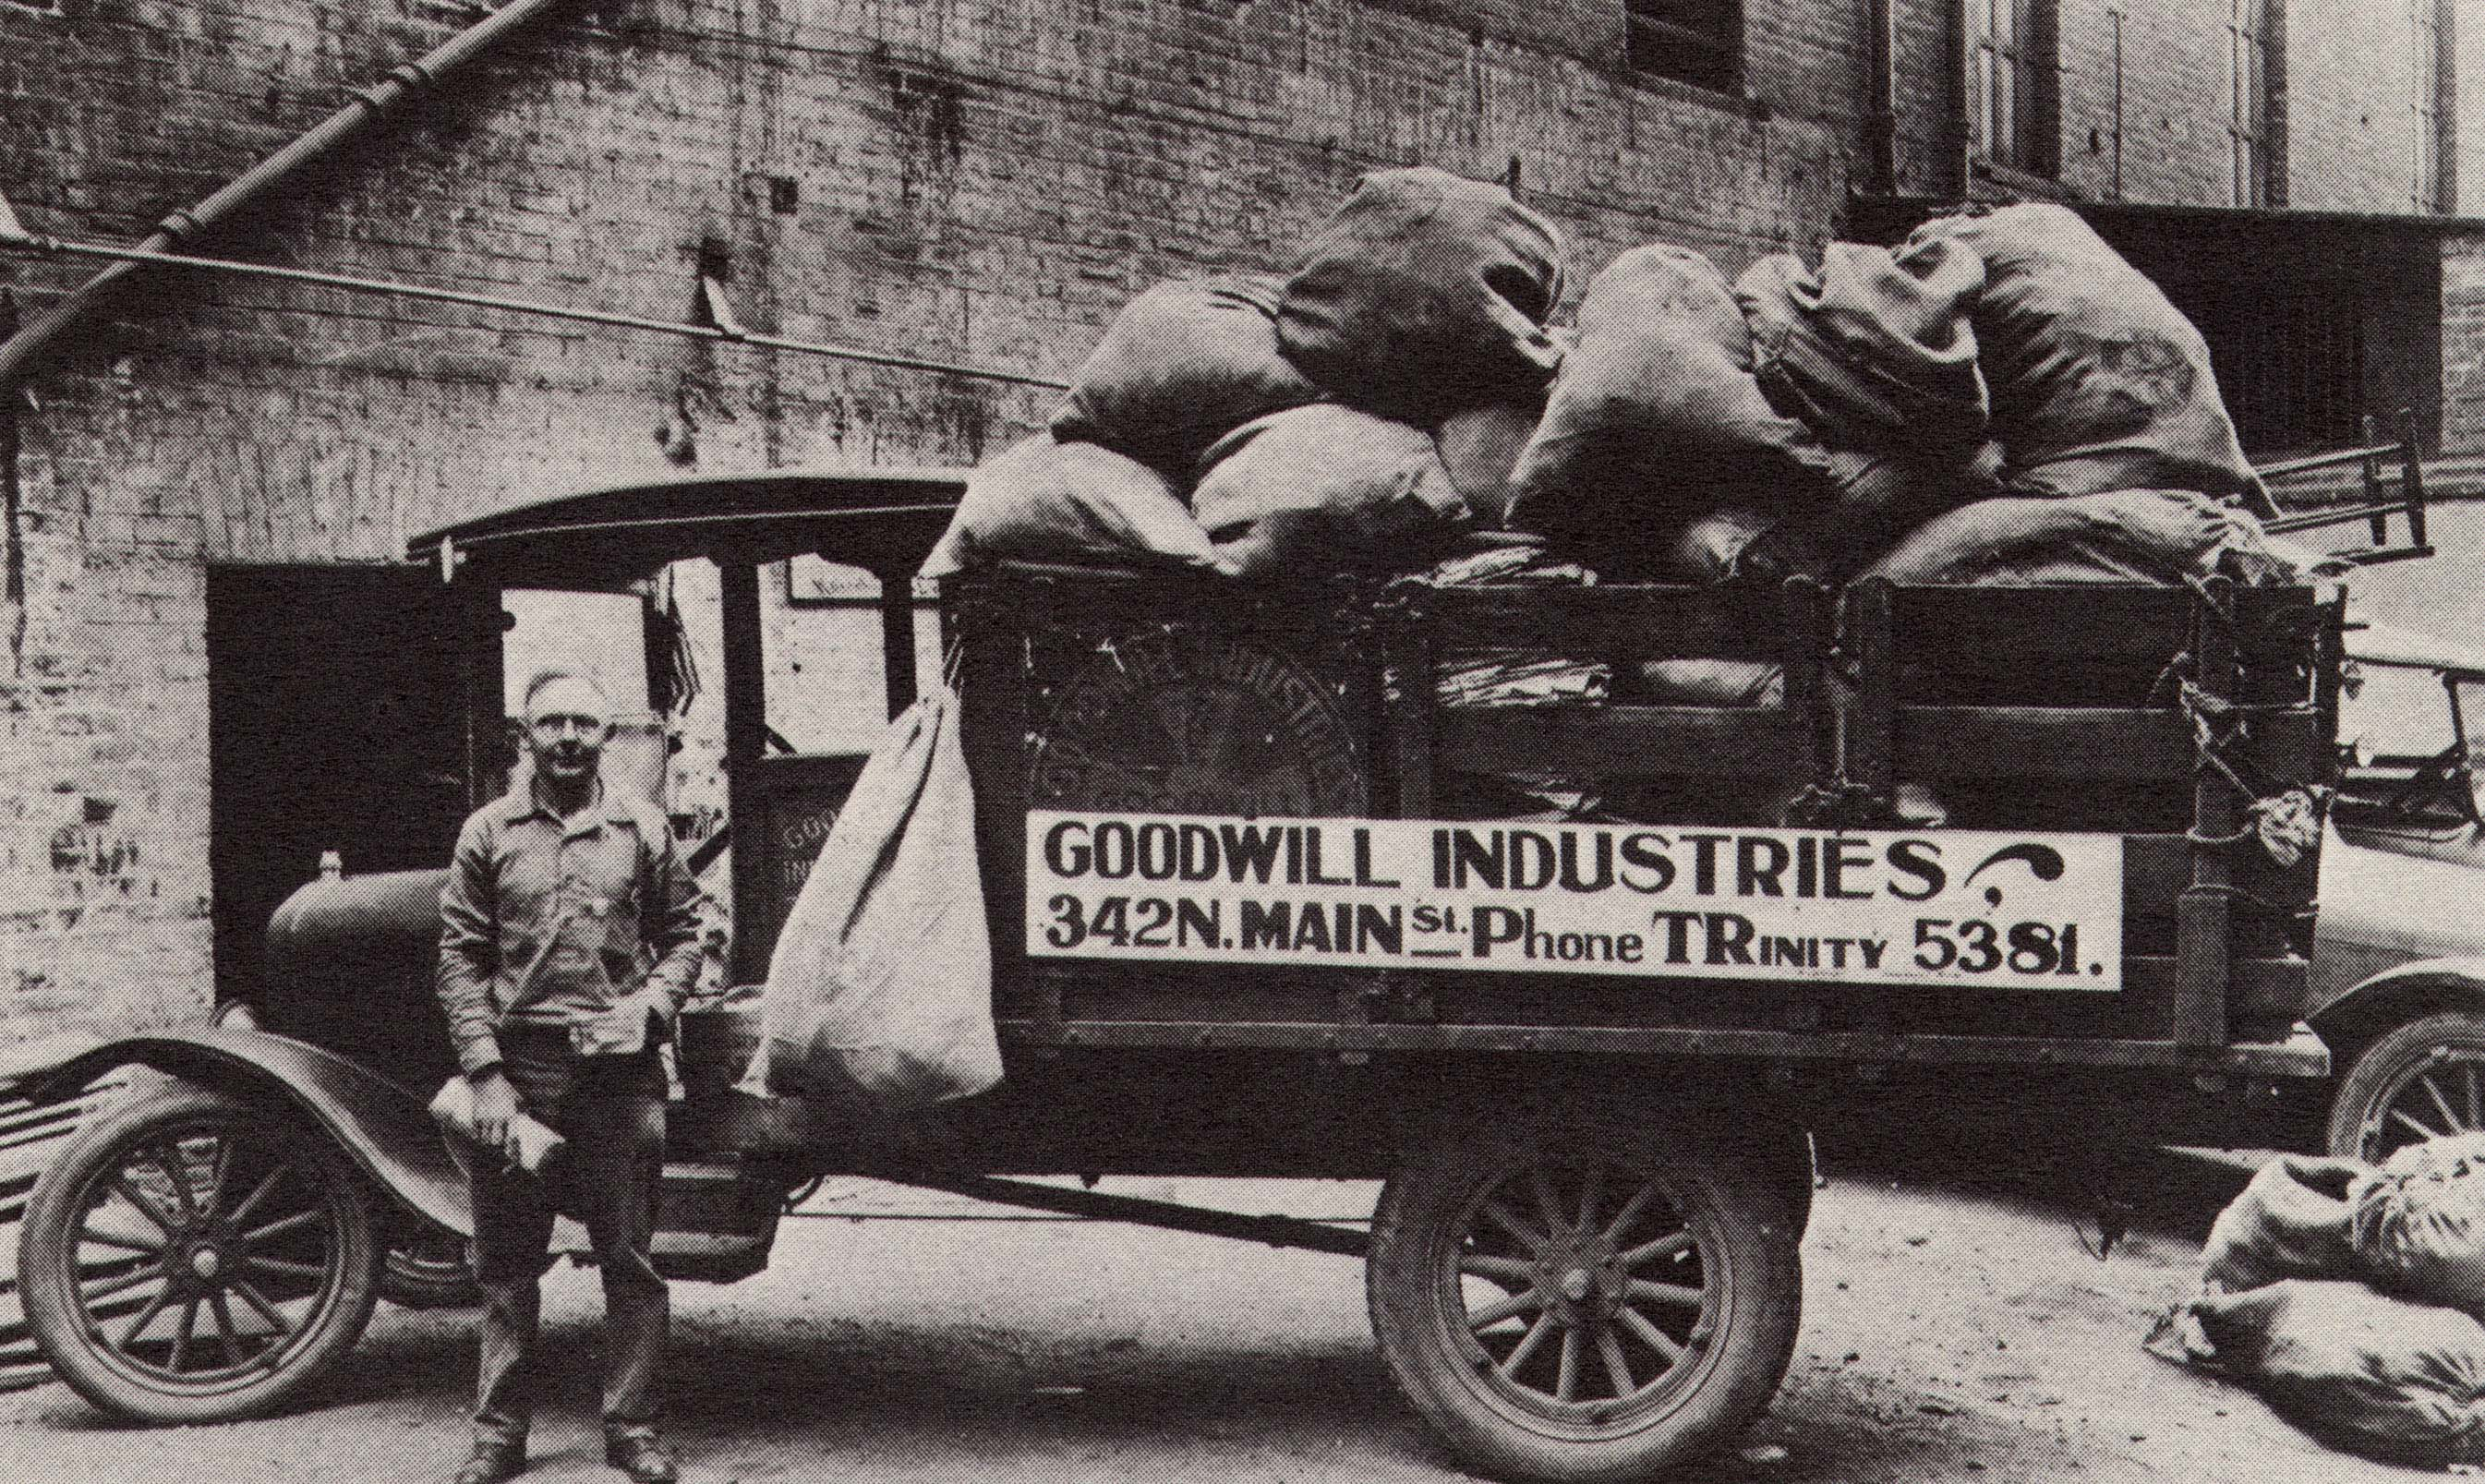 Goodwill asked people to donate clothes in need of repair and collected them in burlap sacks. Helms then employed people to mend the clothes for a daily wage and sold the items back to the community.